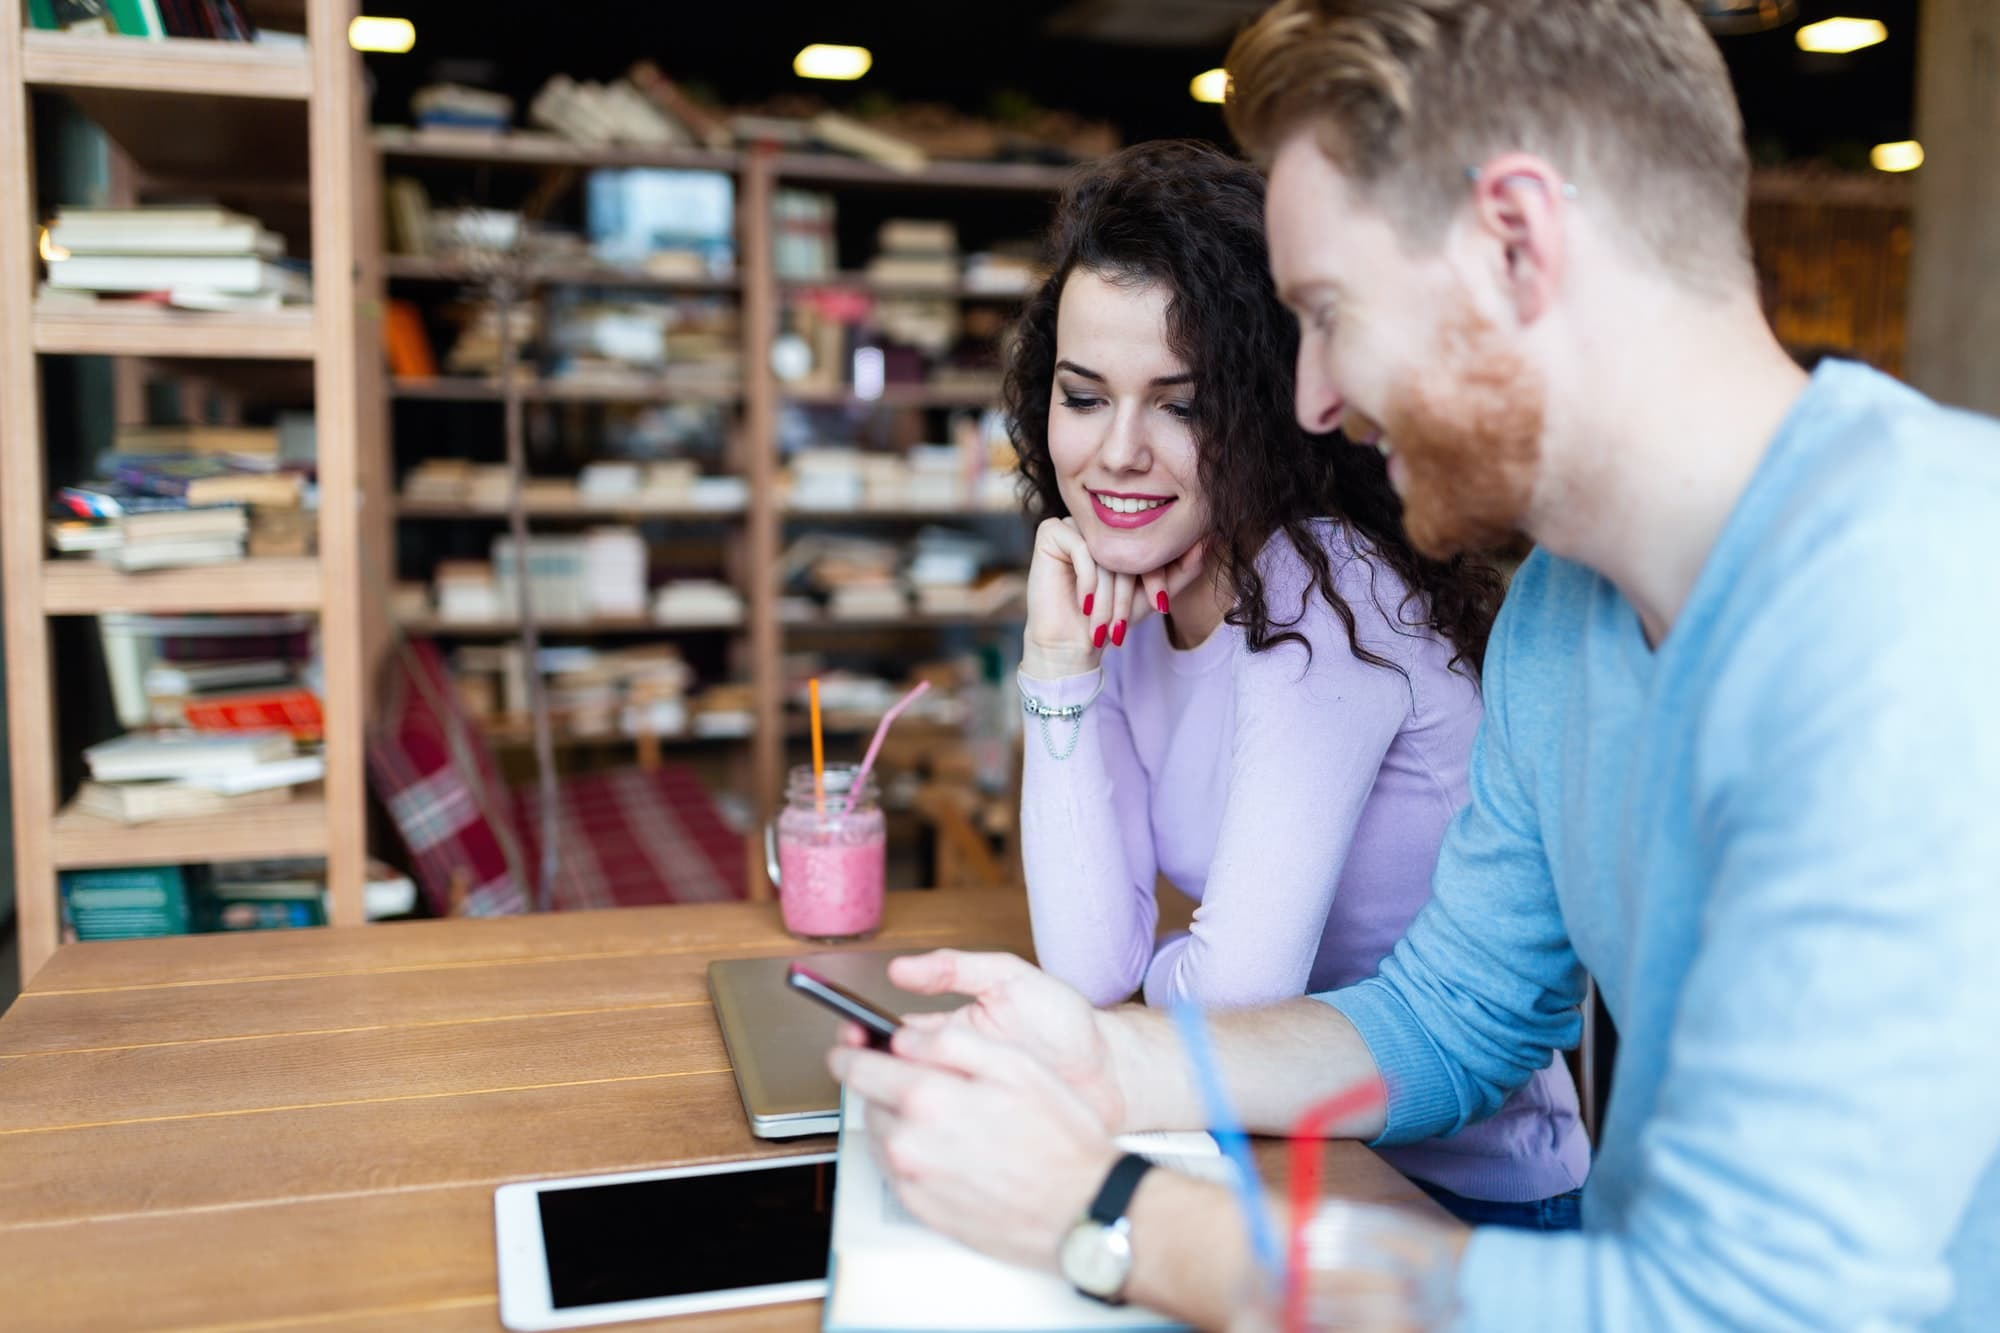 Attractive students learning together in coffee shop